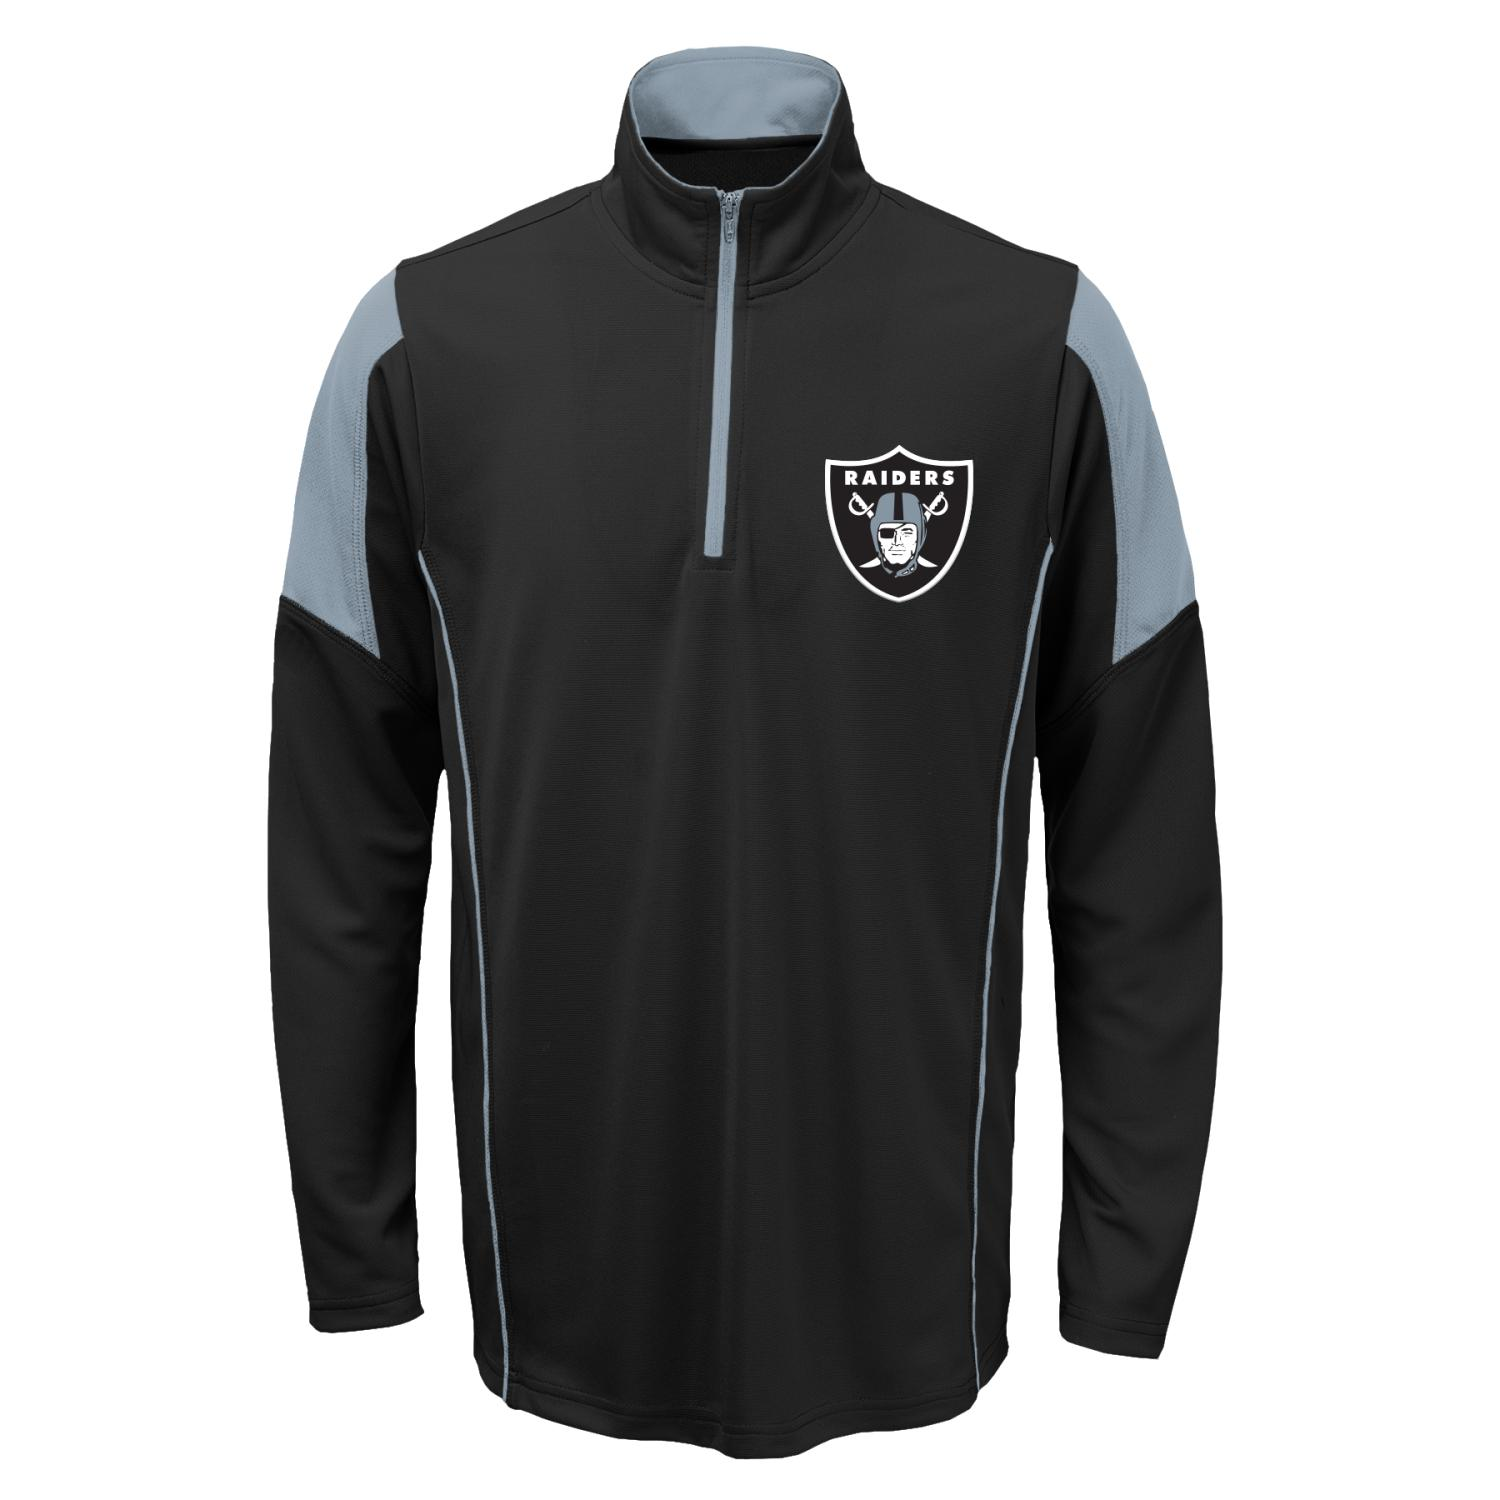 Oakland Raiders Youth NFL Lightweight 1/4 Zip Pullover Long Sleeve Shirt